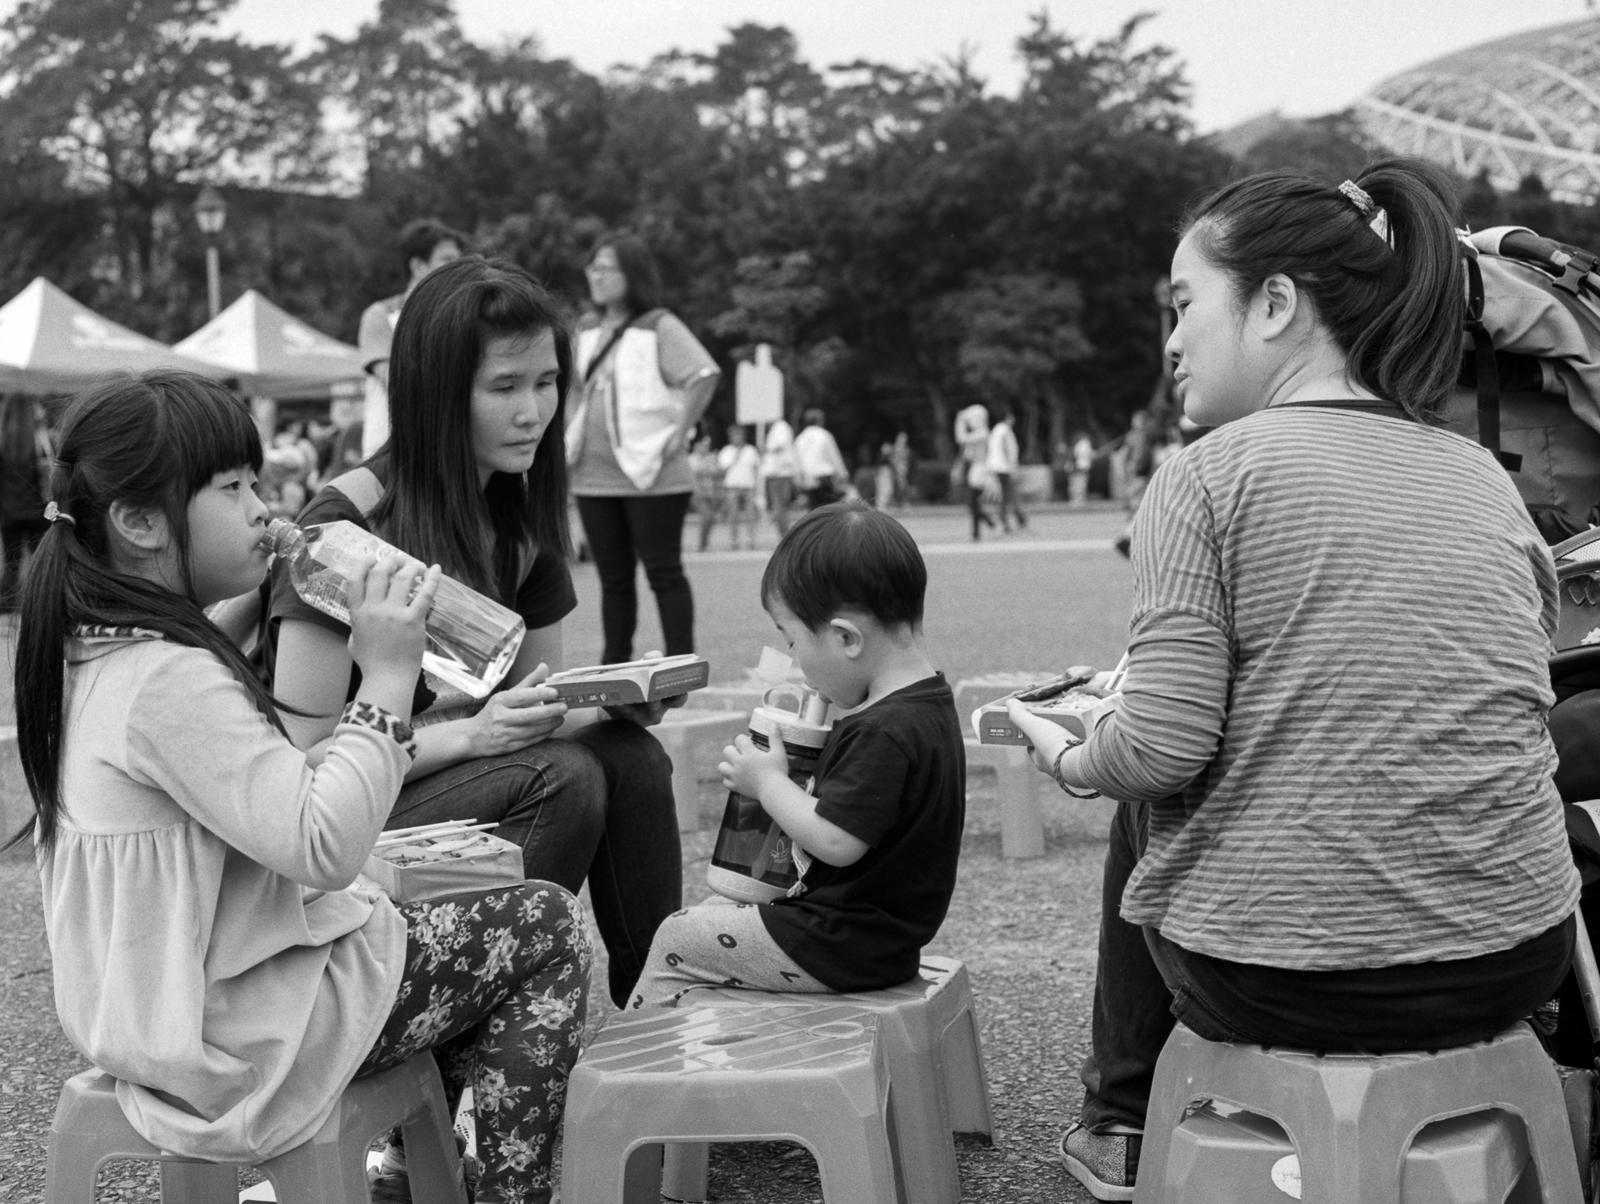 201404_Taiwan_MF1_Mamiya645_GP3_004-Edit.jpg